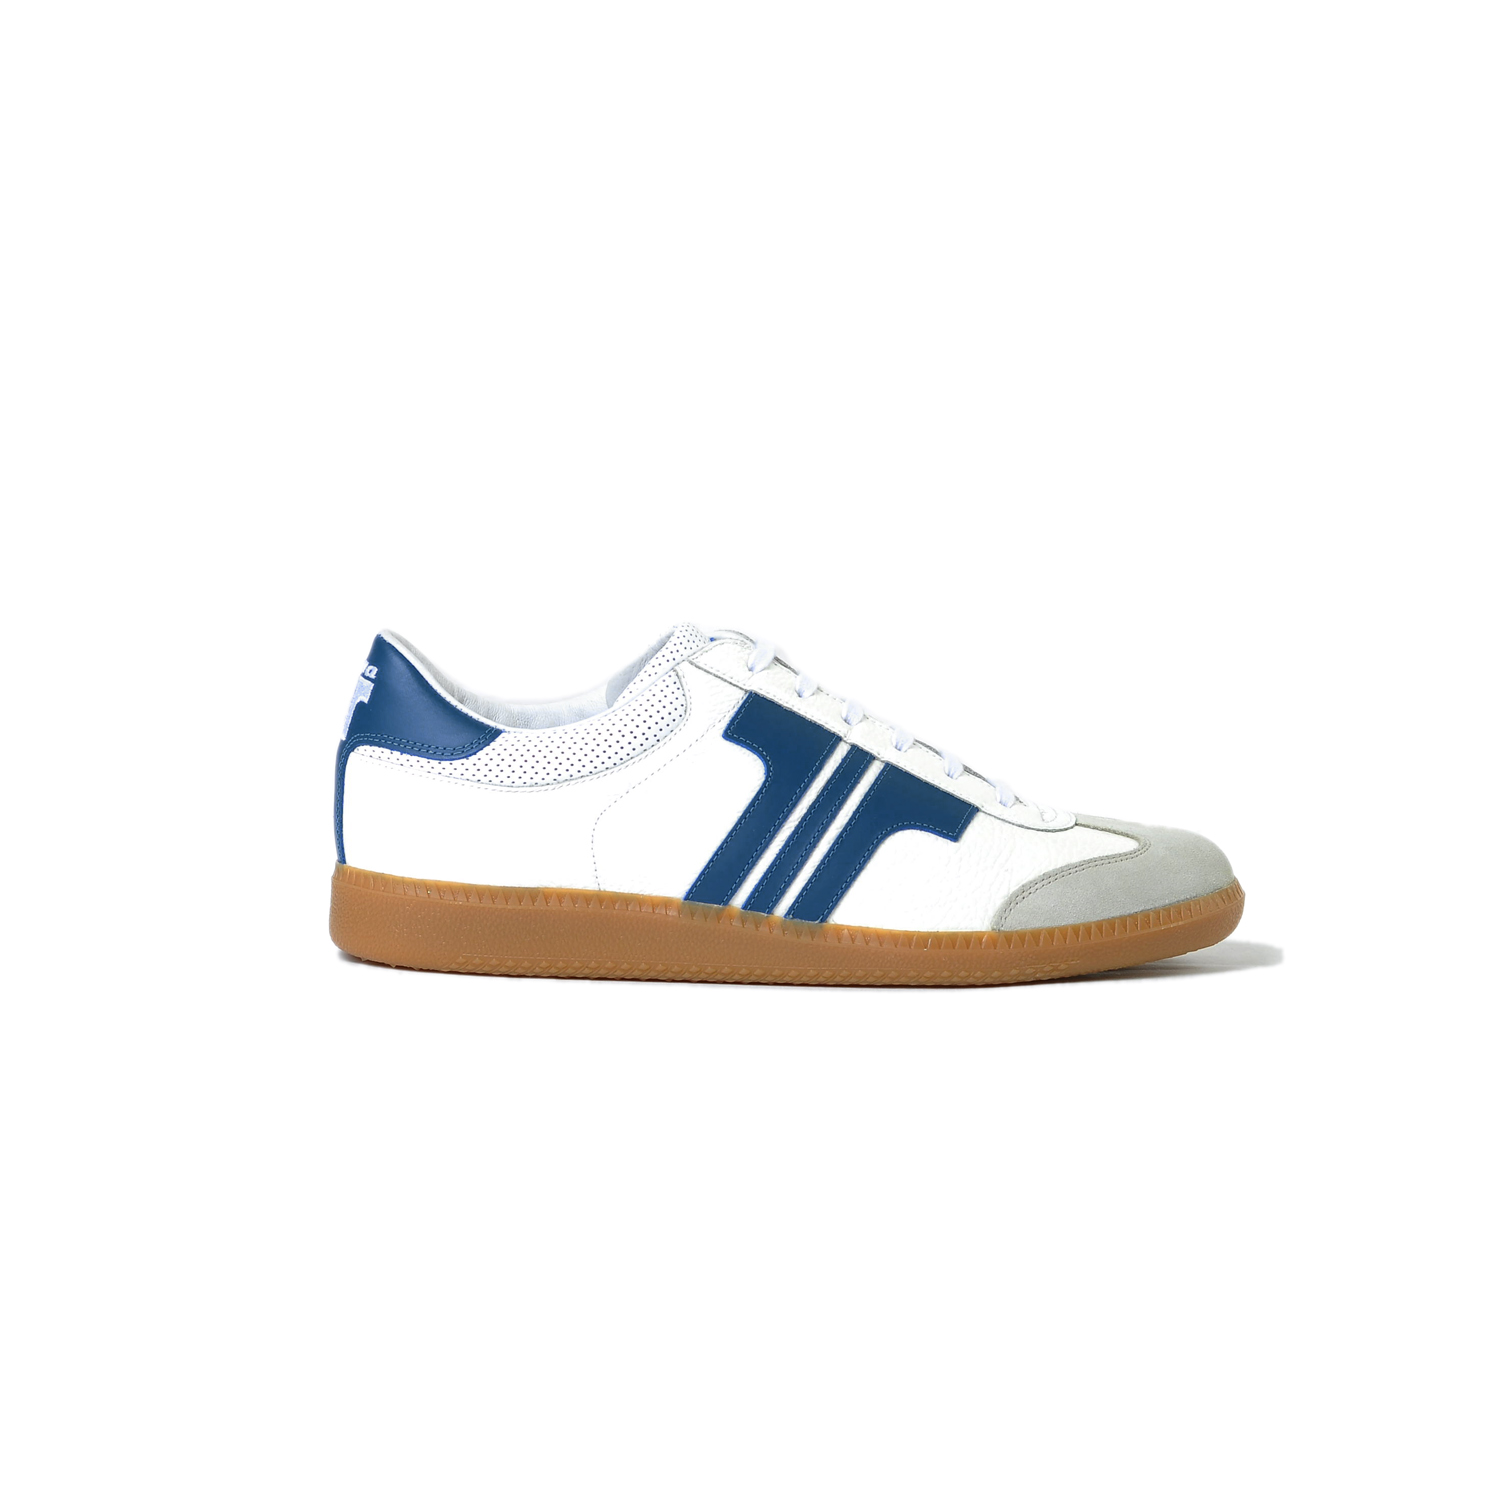 Tisza shoes - Compakt - White-blue